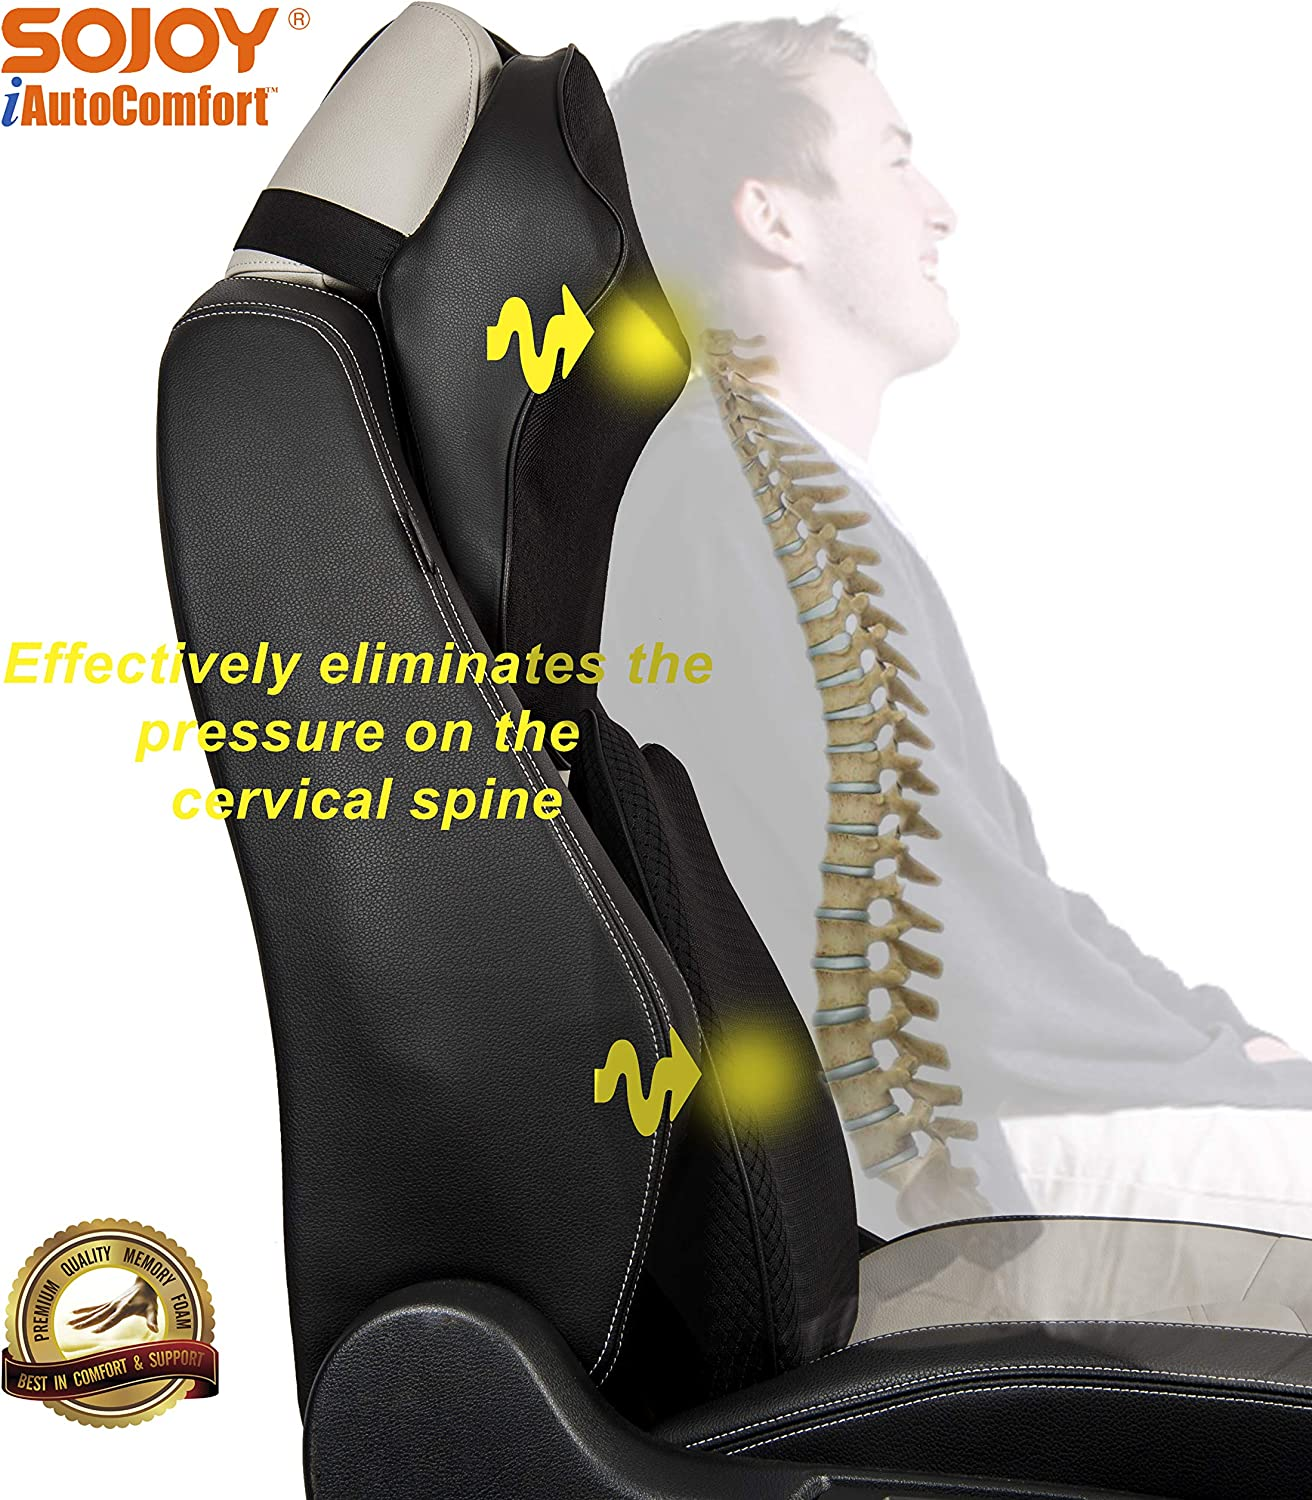 Sojoy Patented Universal Ergonomic Streamlining Car Seat//Cushion Lumbar and Neck Support 17x12x5